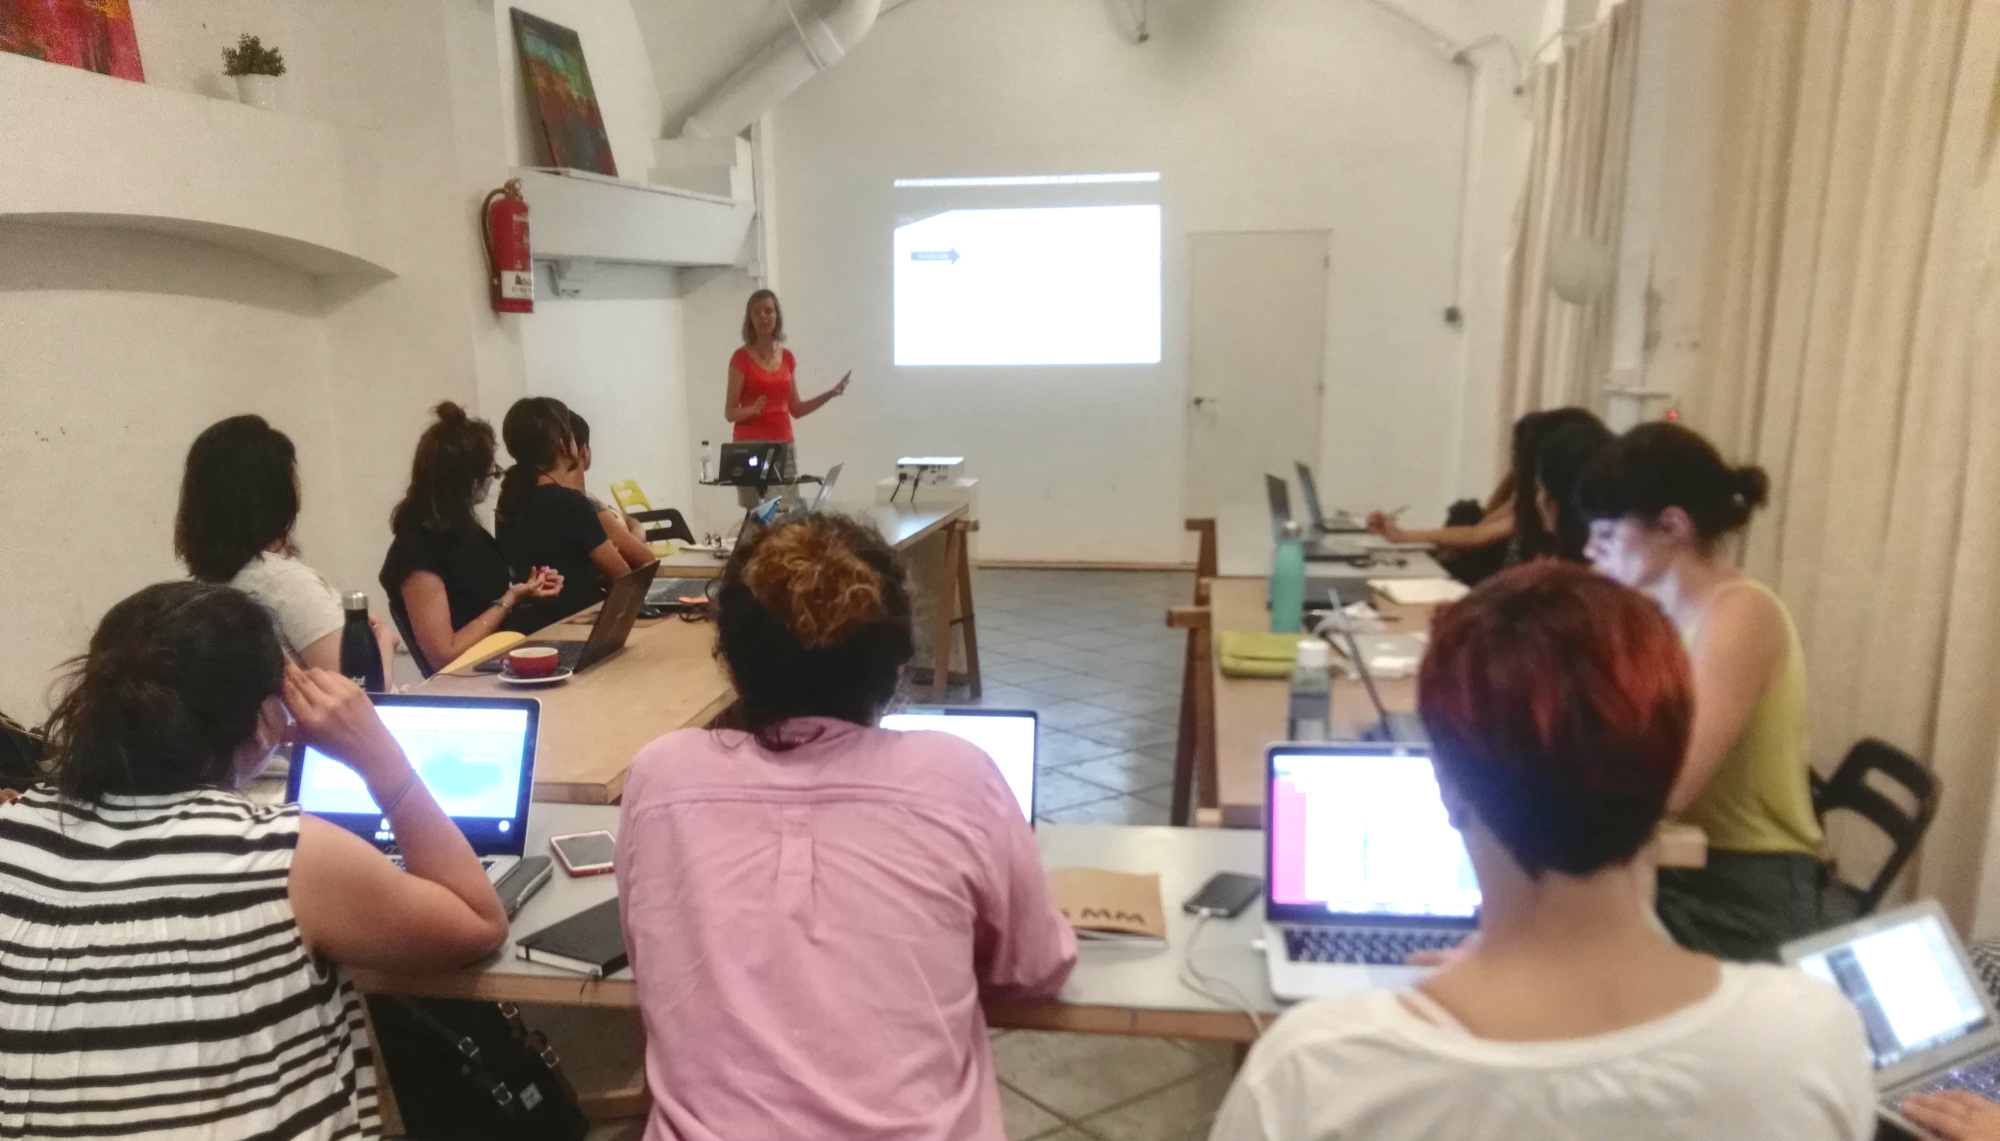 AllWomen - the first workshop of AllWomen about chatbots with susana duran and women in tech